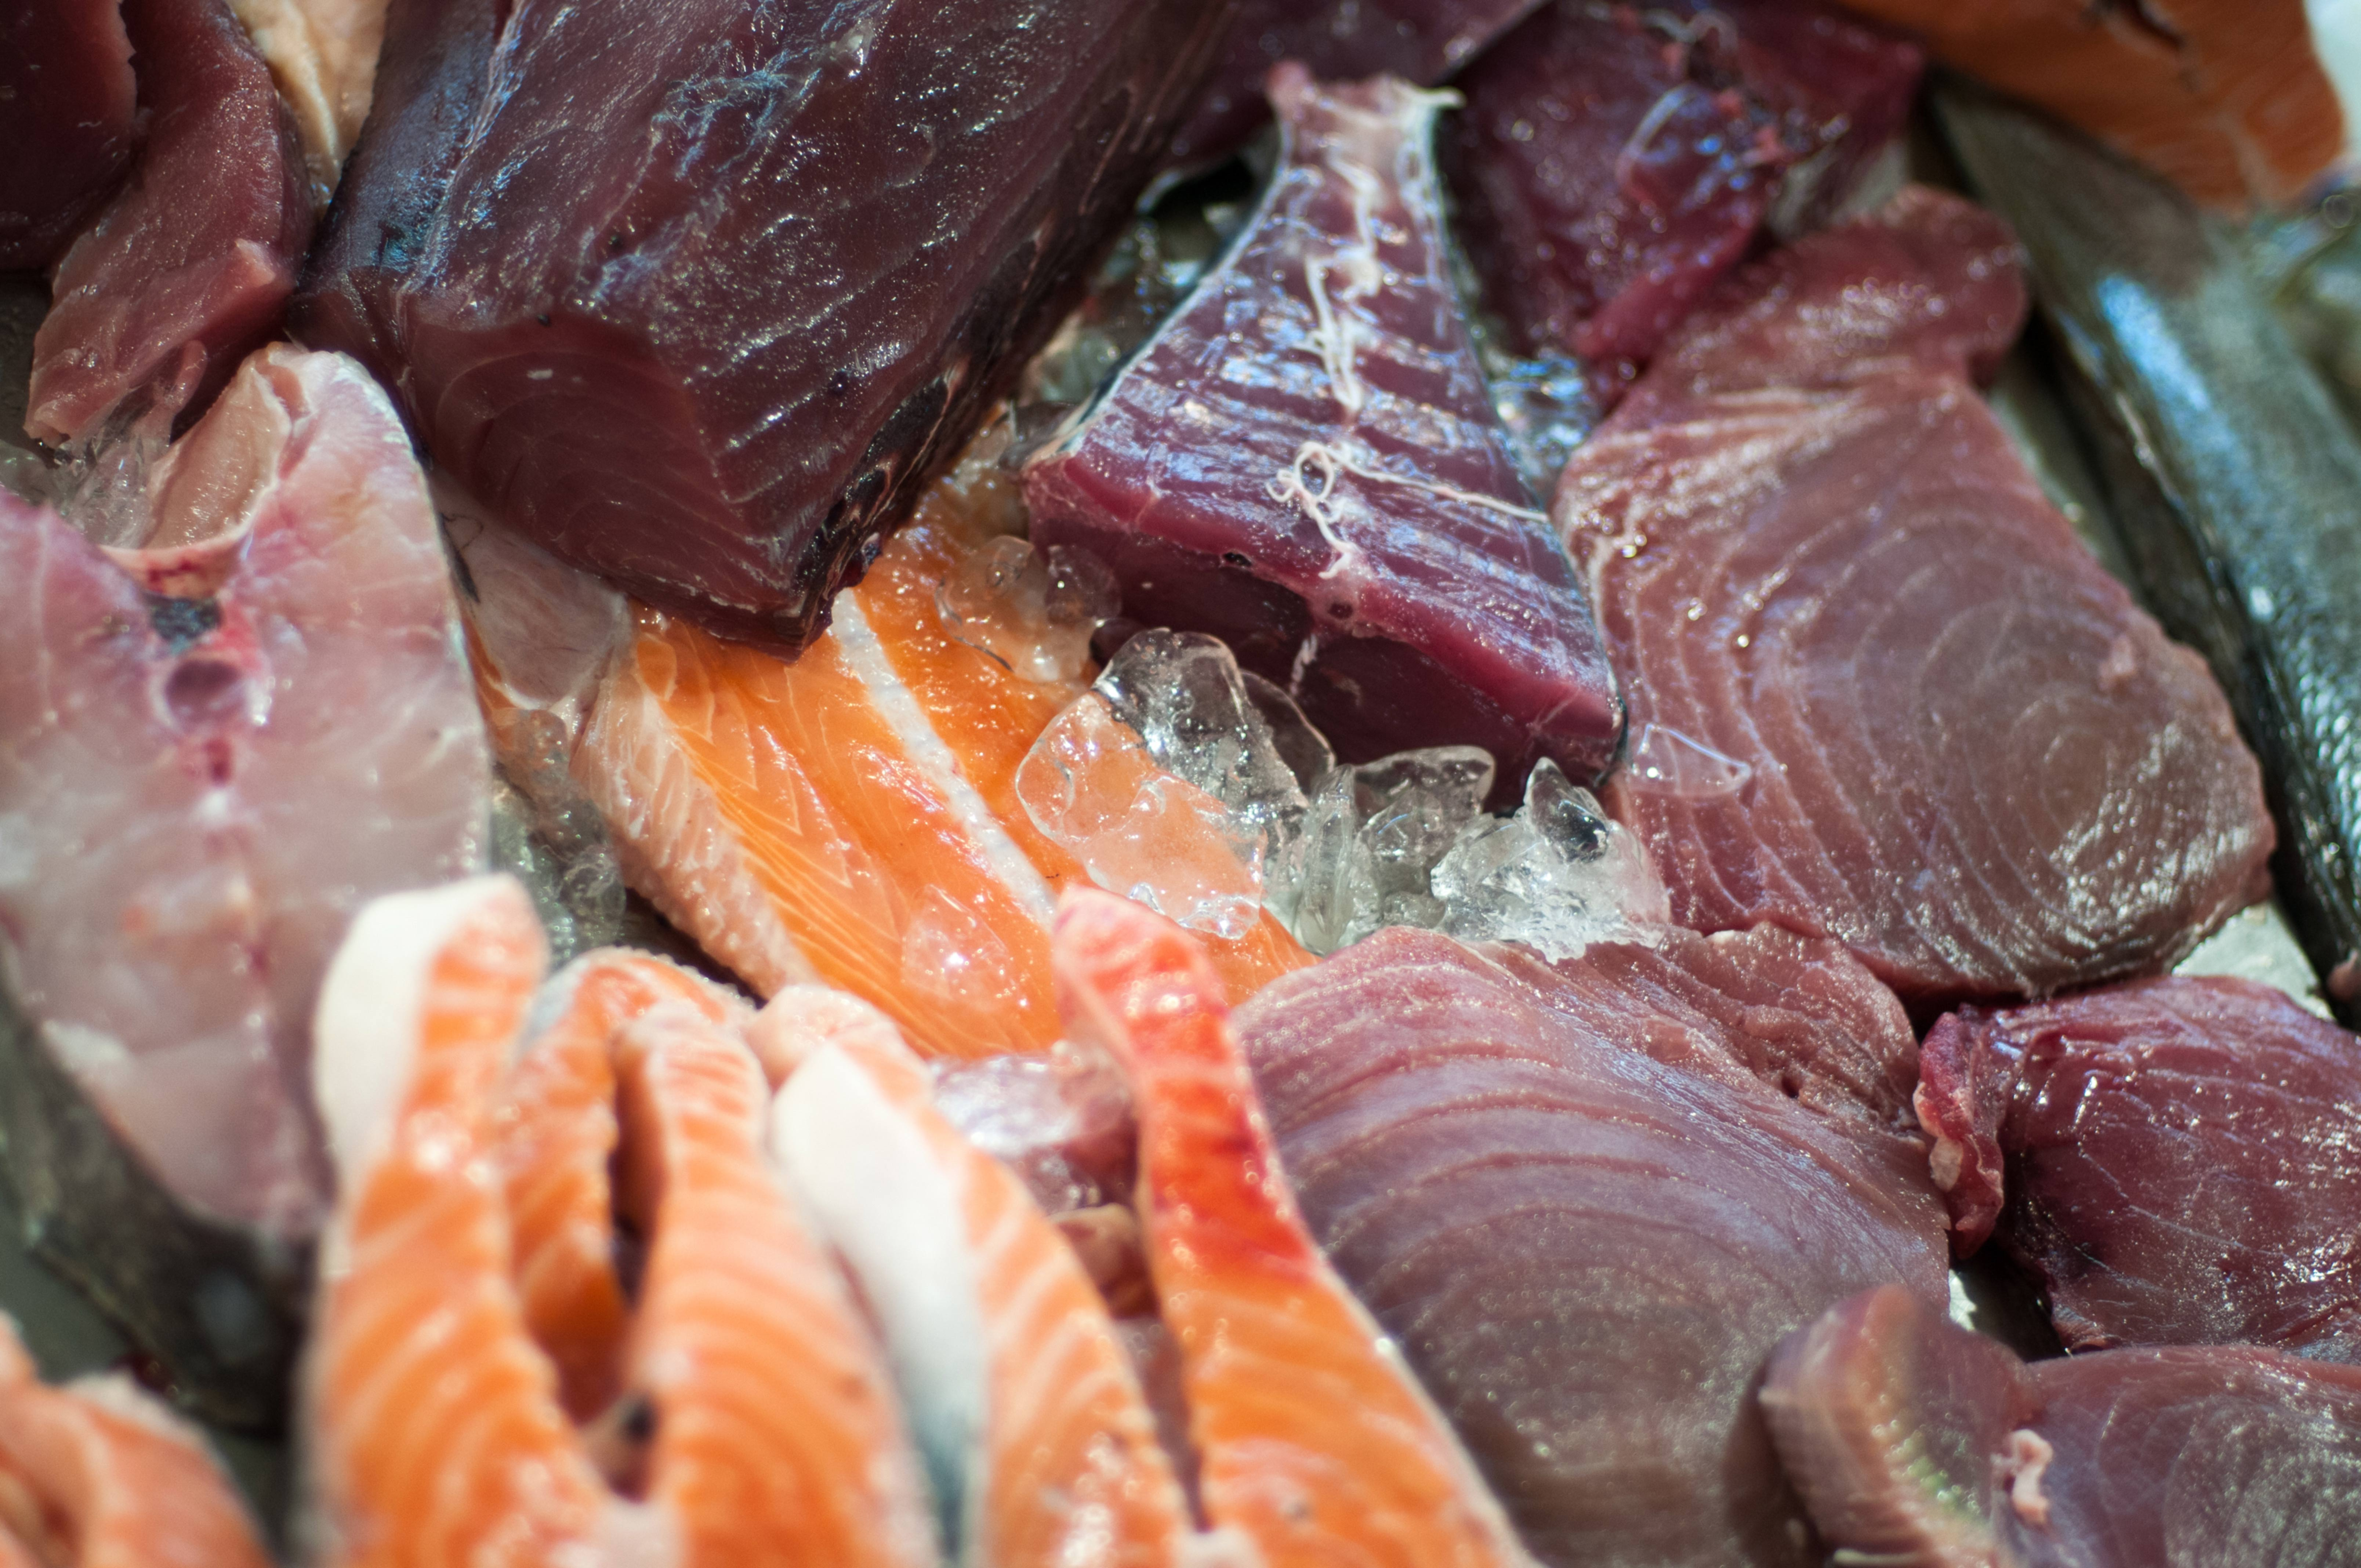 Variety of colorful fresh fish on ice at fishmarket